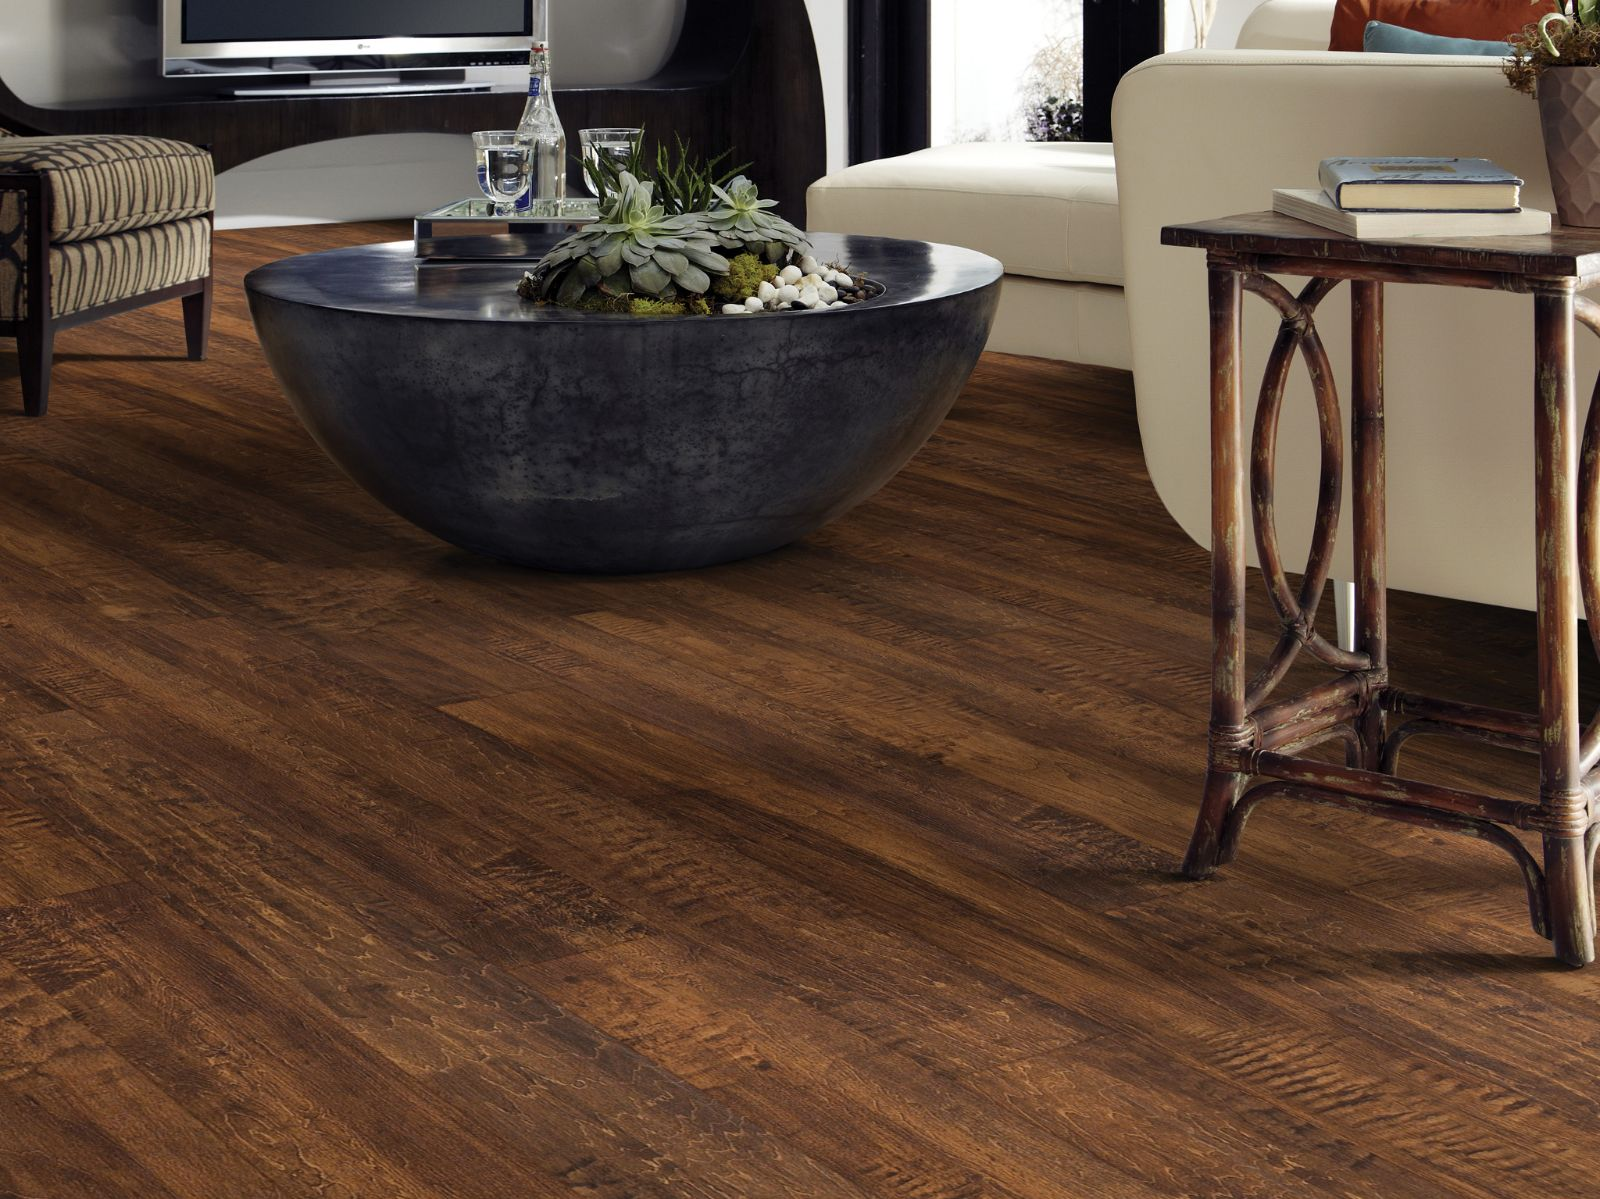 luxury vinyl flooring near me Minneapolis